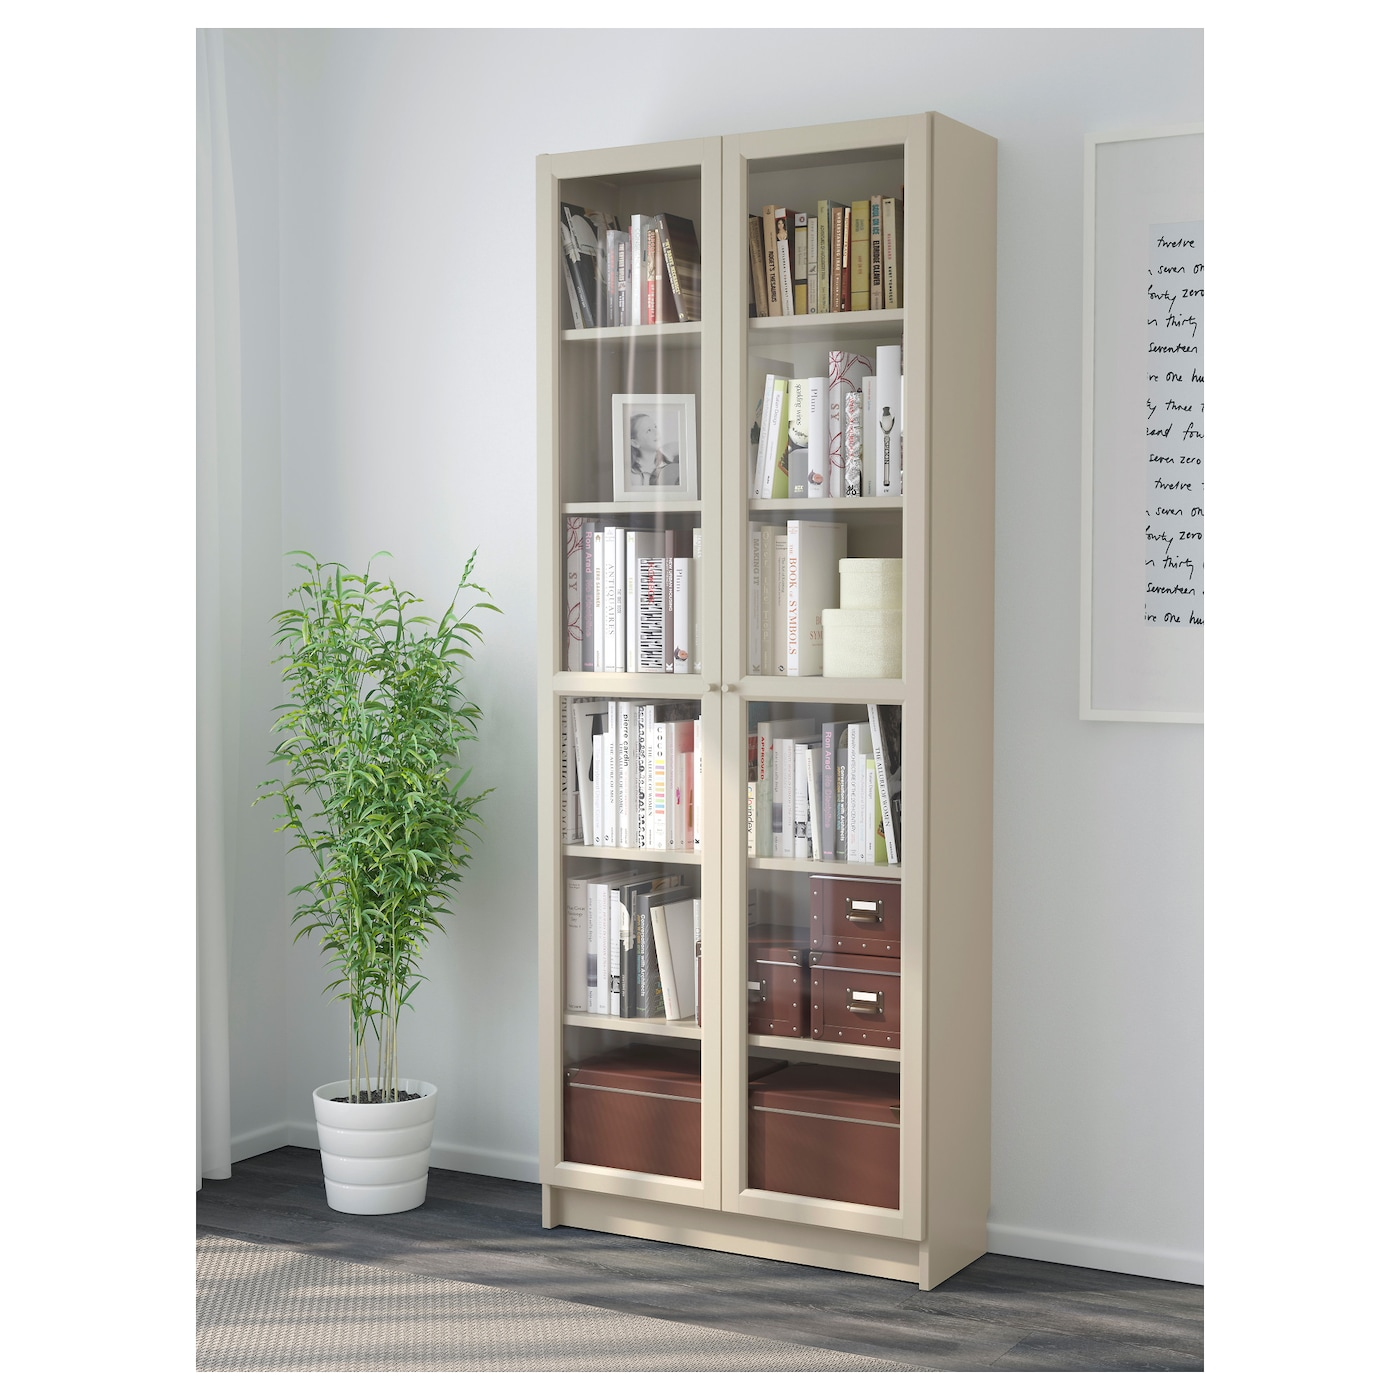 living room bookshelves billy bookcase with doors beige 80x30x202 cm ikea 10256